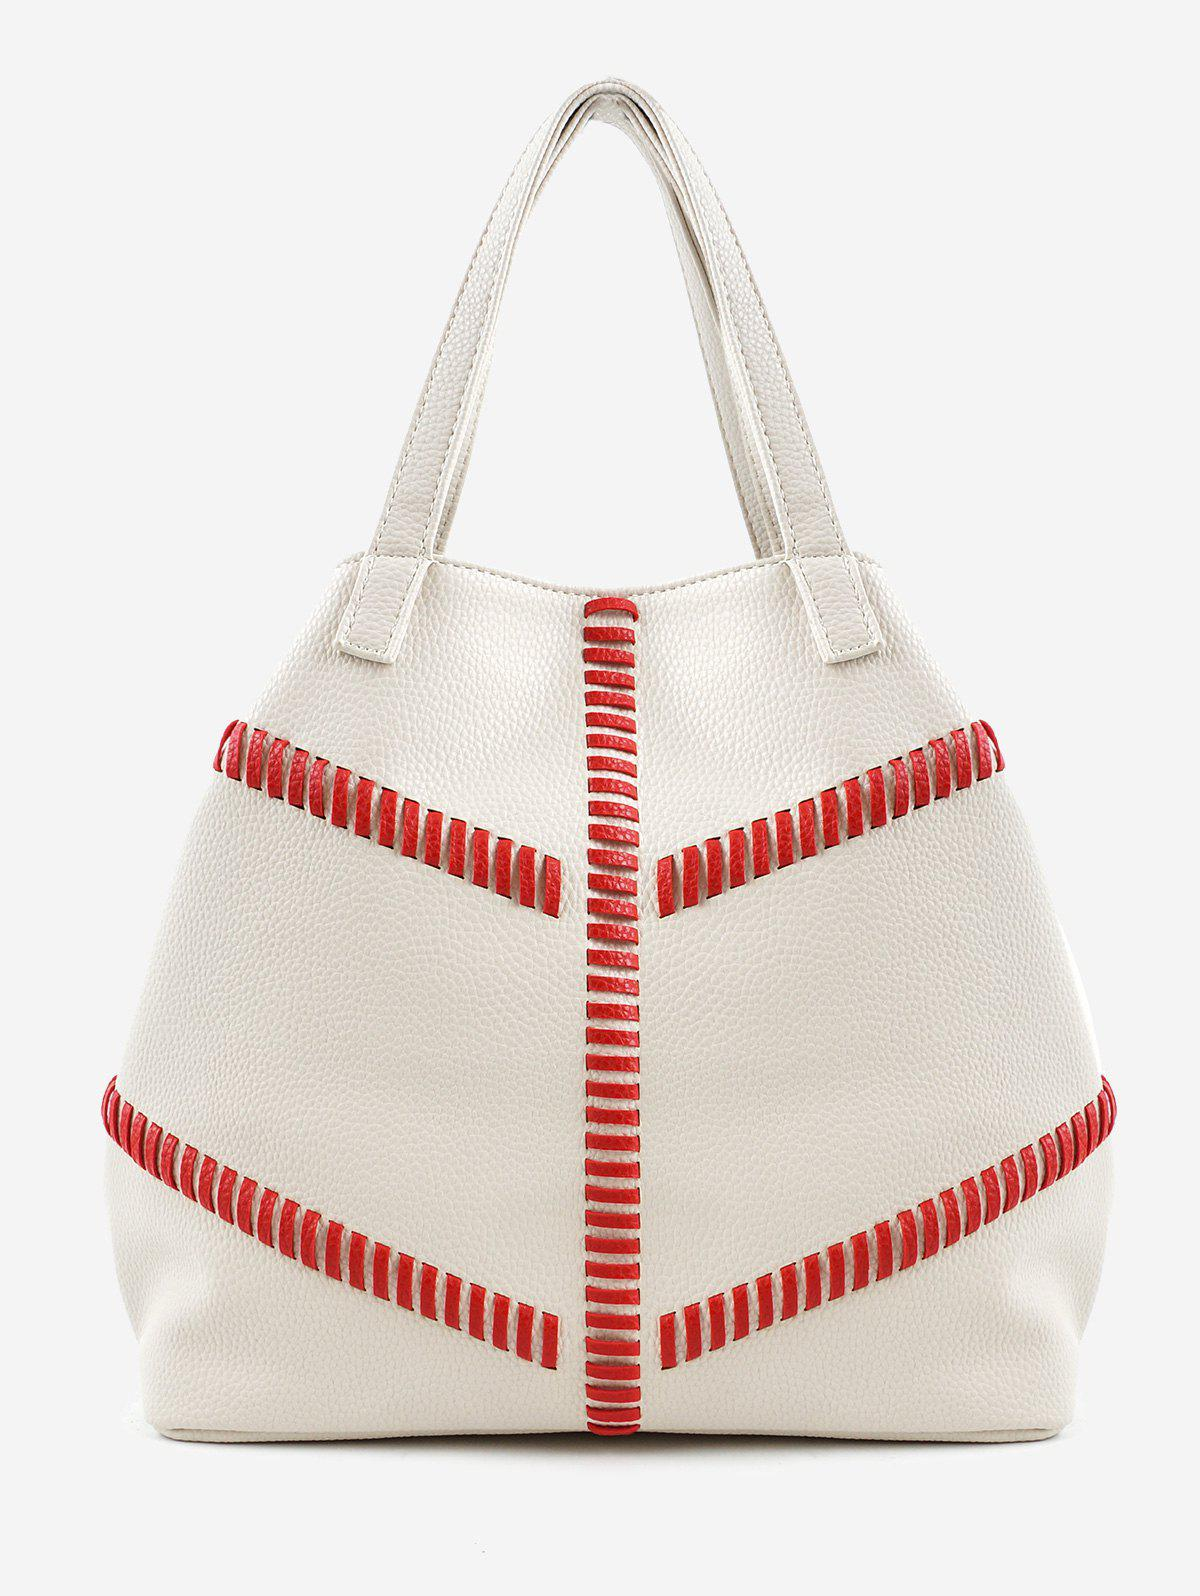 Color Block Whipstitch Practical Minimalist Tote Bag